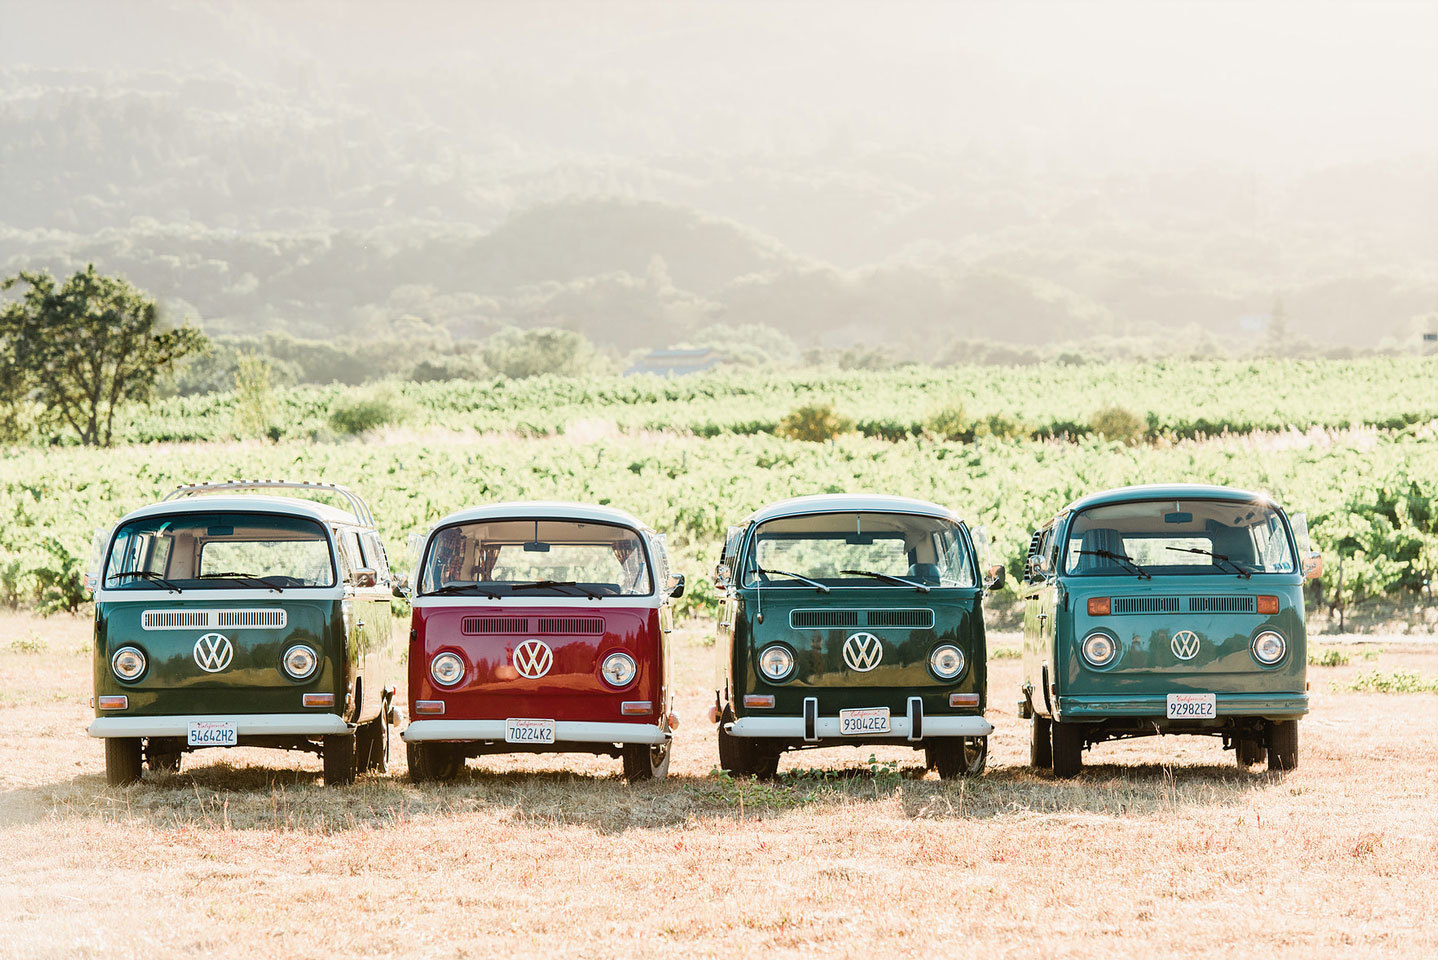 4 VW buses parked next to vineyards